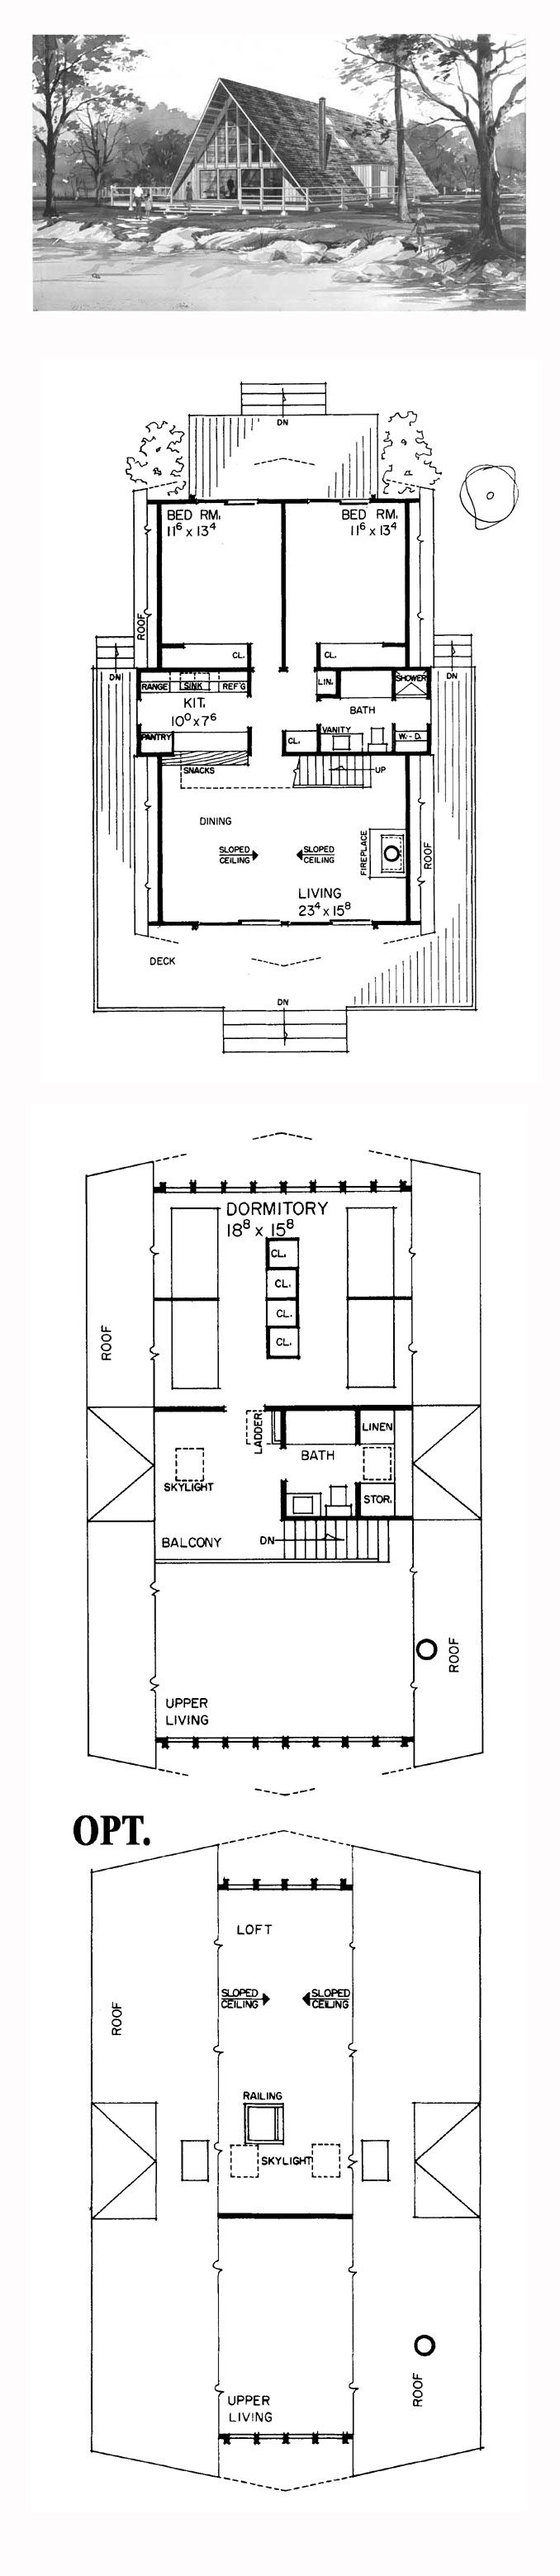 Photo of Contemporary Style House Plan 91209 with 3 Bed, 3 Bath